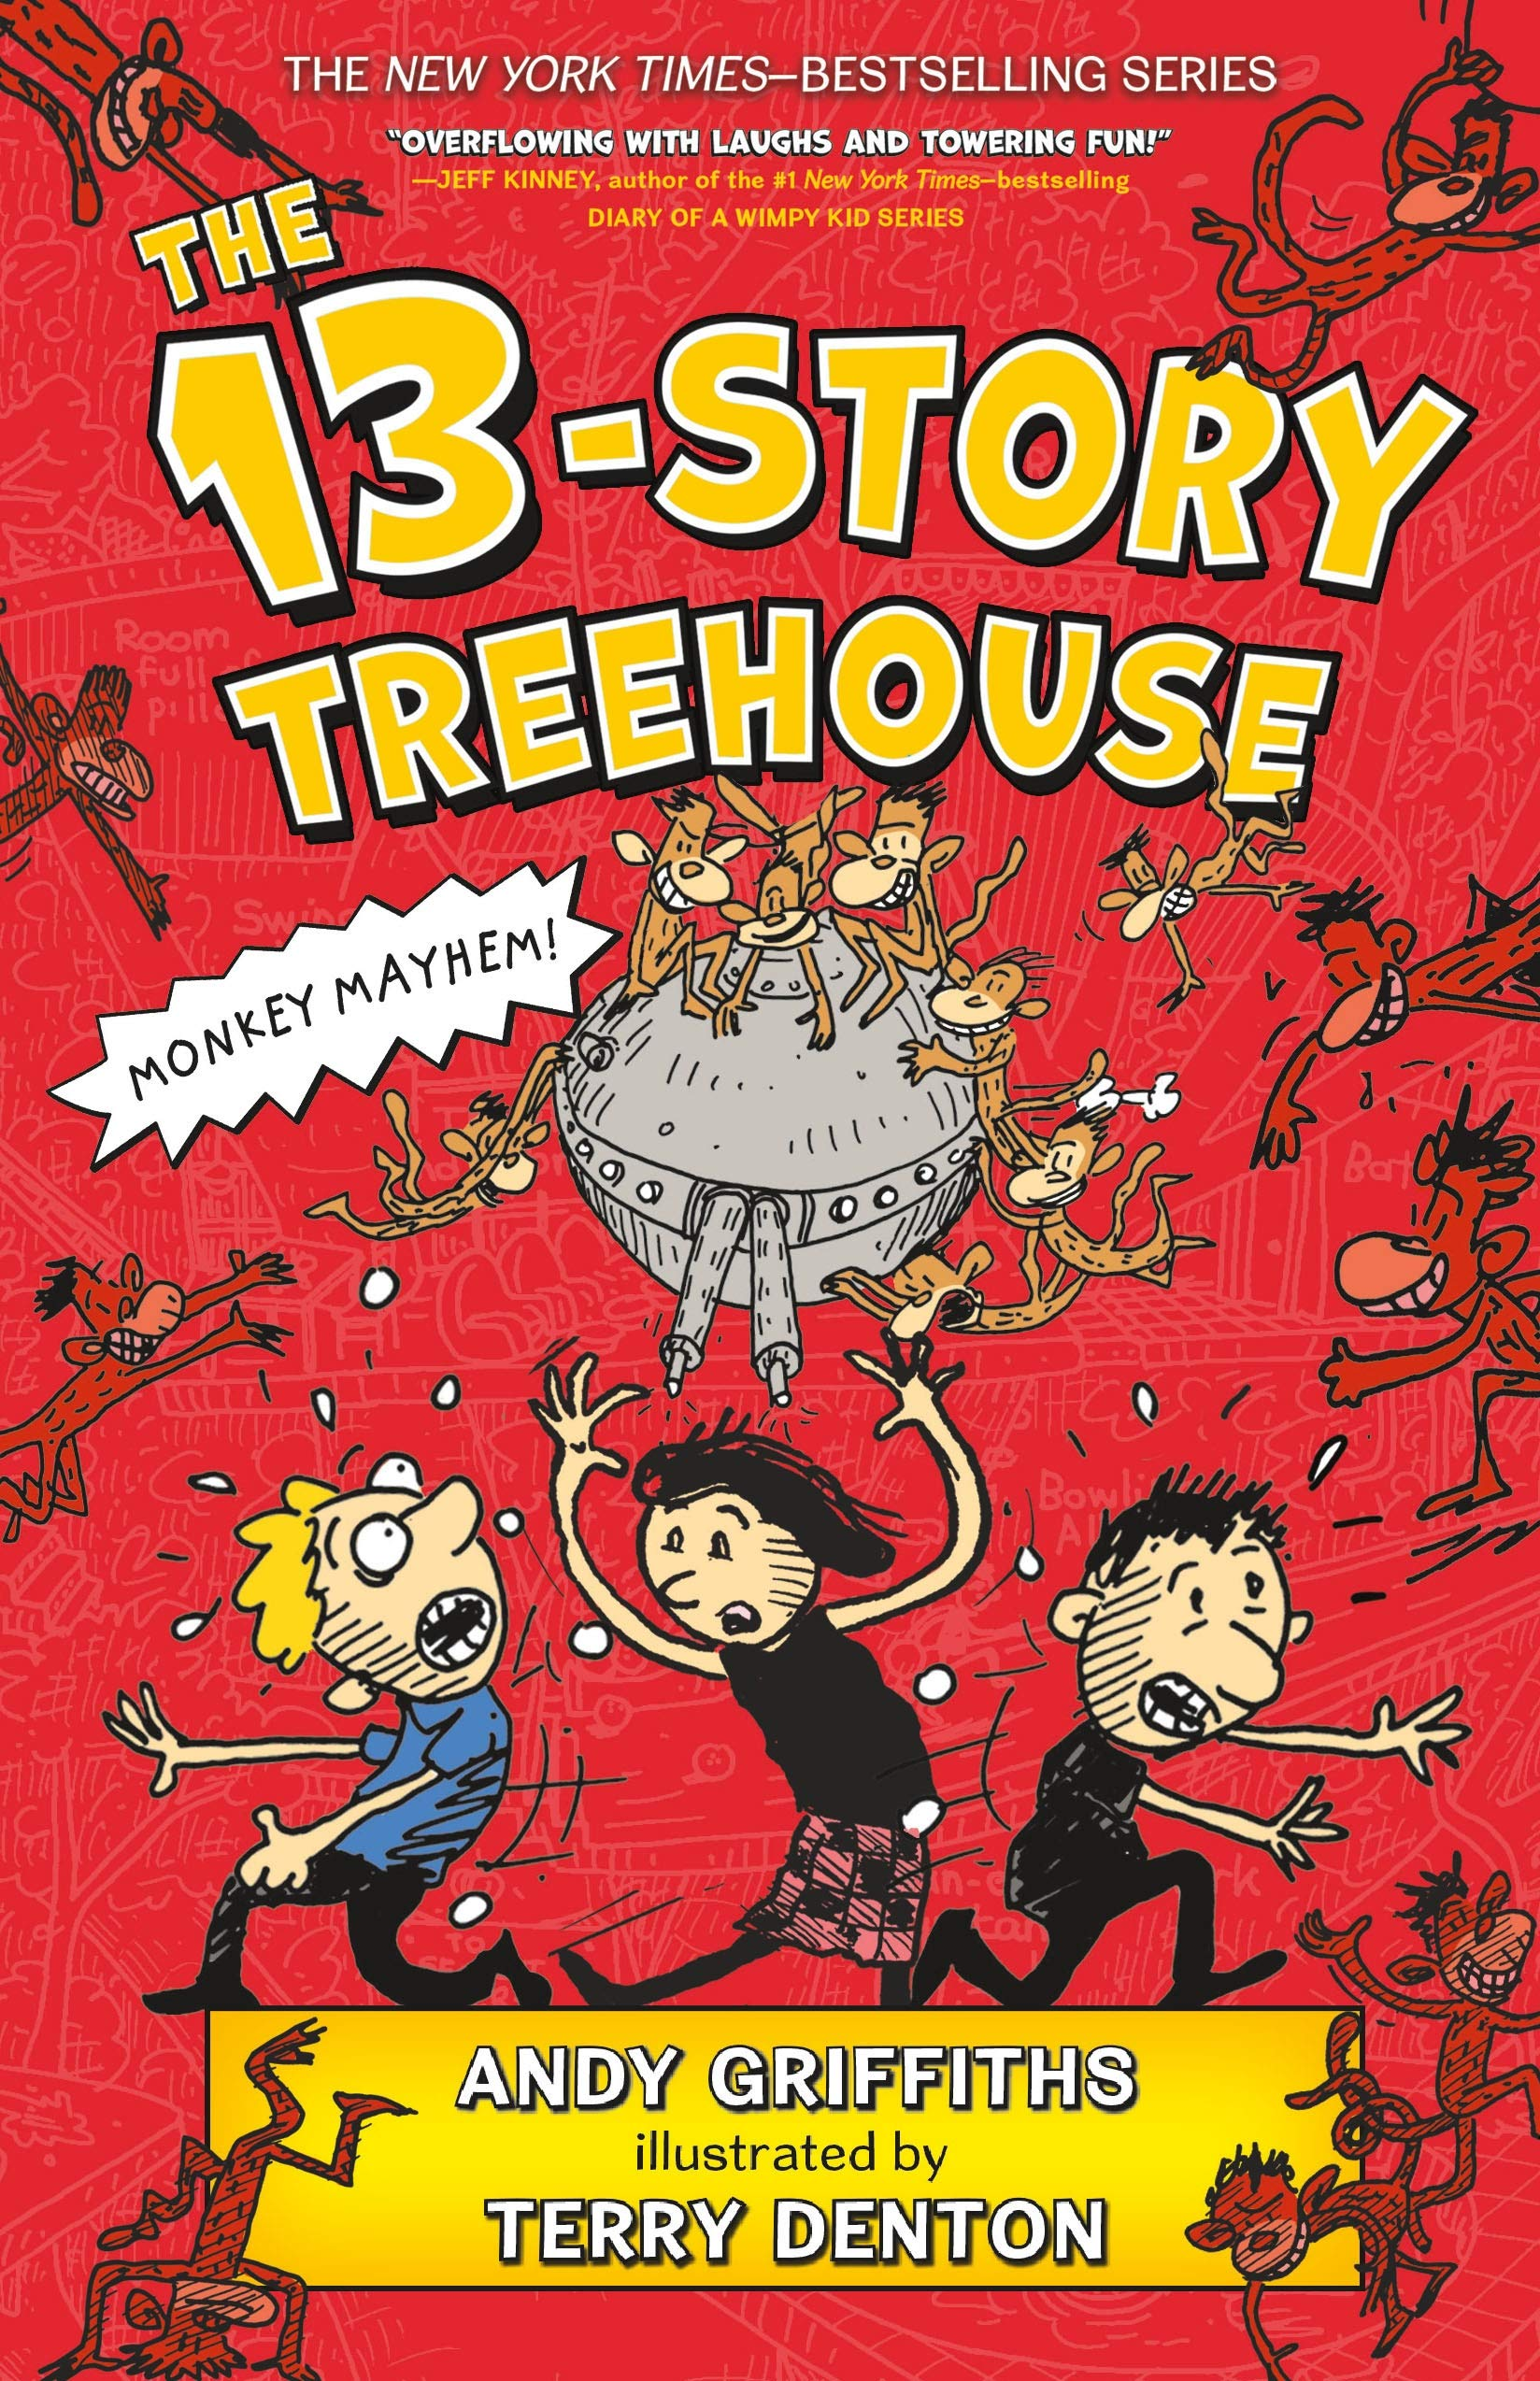 the 13 storey treehouse denton terry griffiths andy